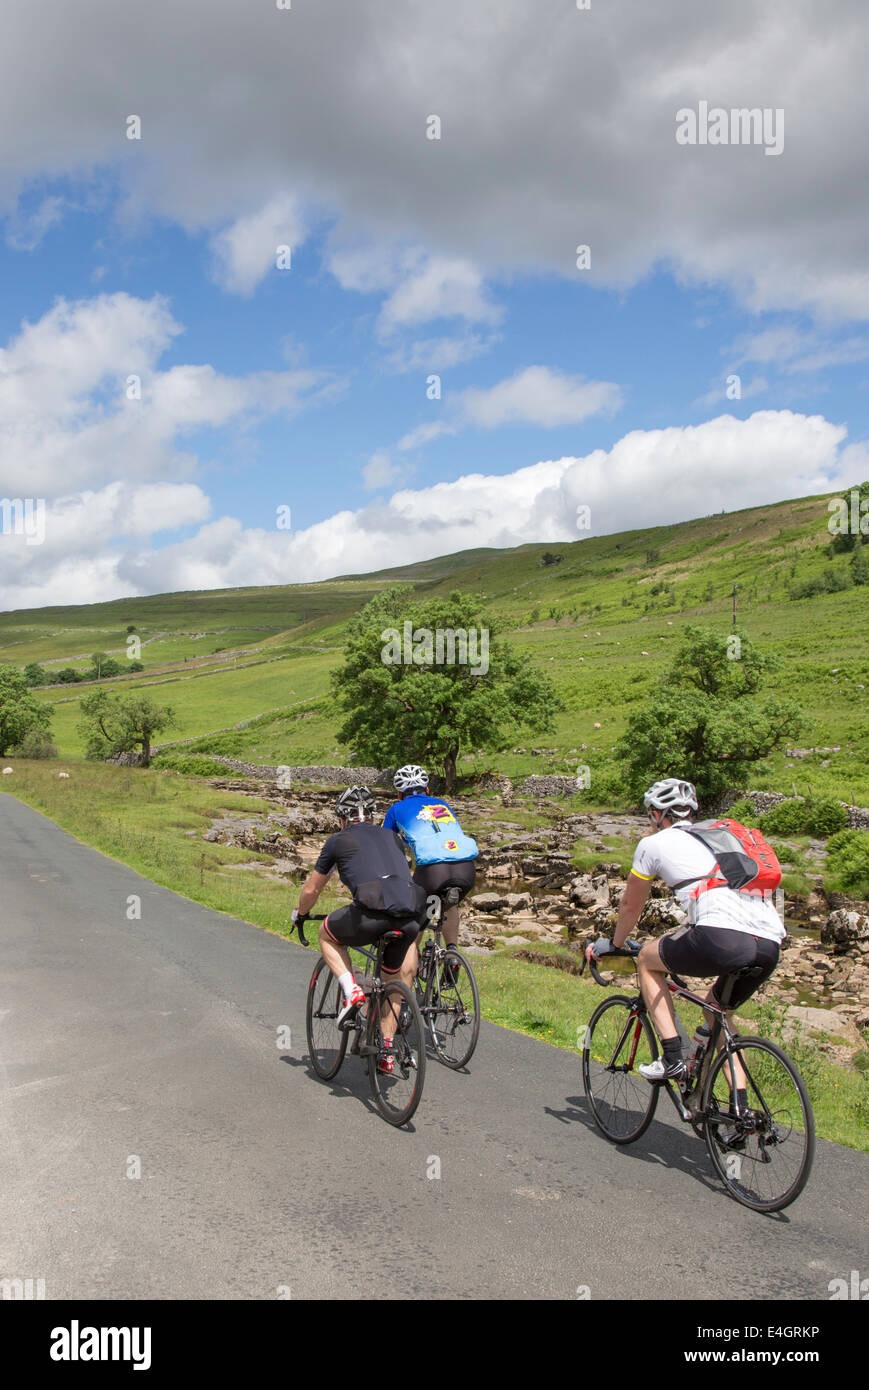 Cyclists in Wharfdale in the Yorkshire Dales National Park, North Yorkshire, England, UK - Stock Image